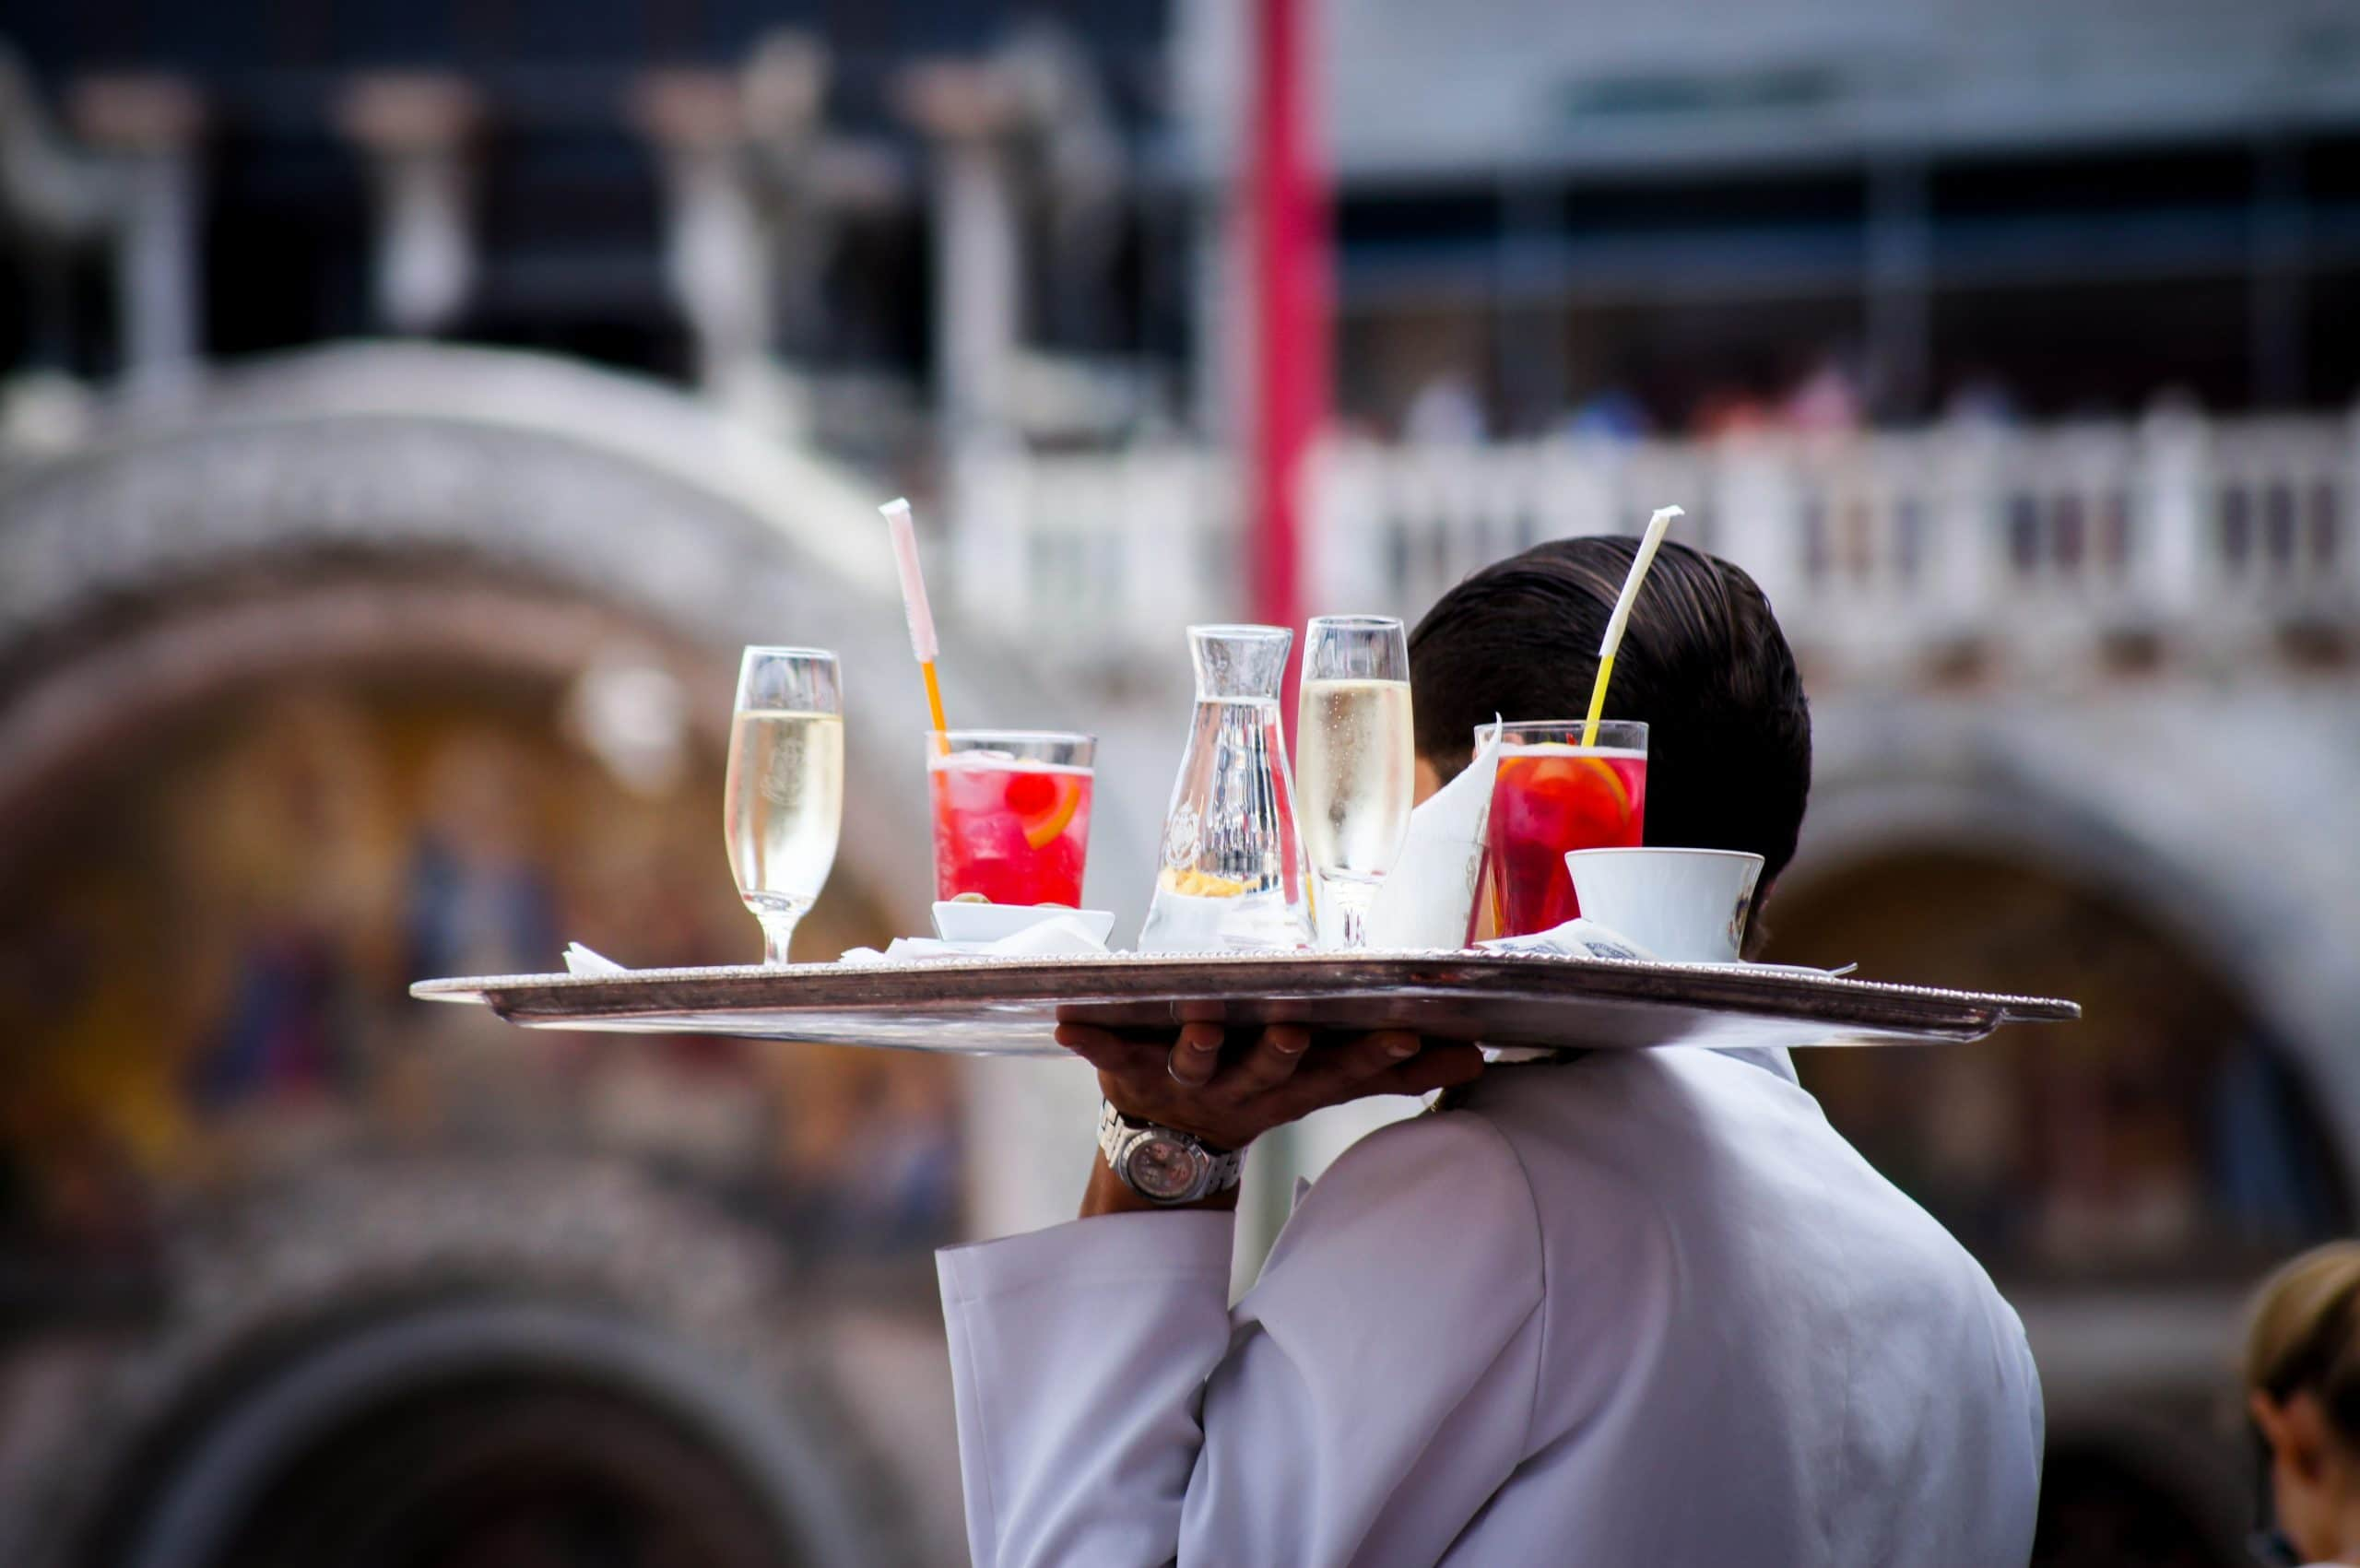 Waiter carrying drinks on tray